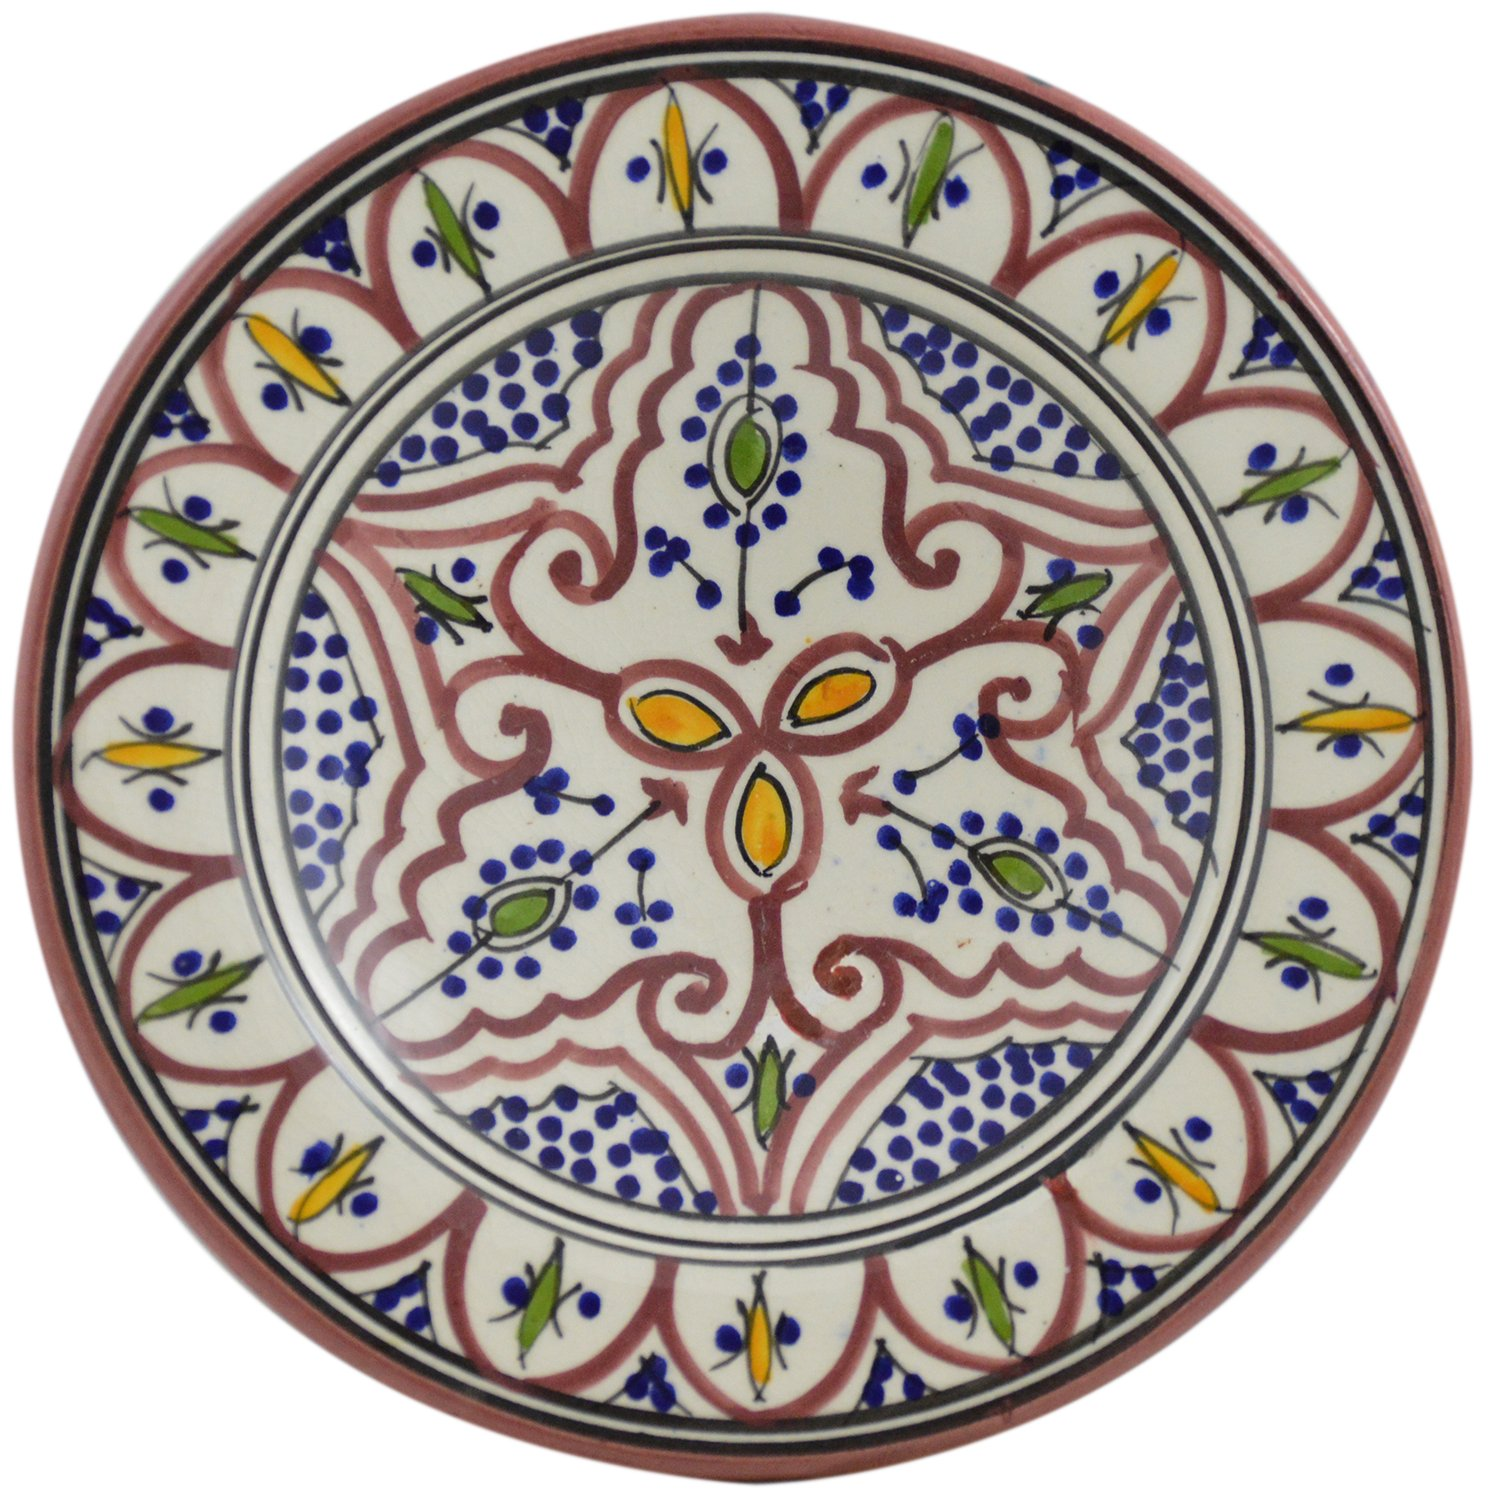 Ceramic Plates Moroccan Handmade Appetizer Tapas Serving Decorative 8 inches Round